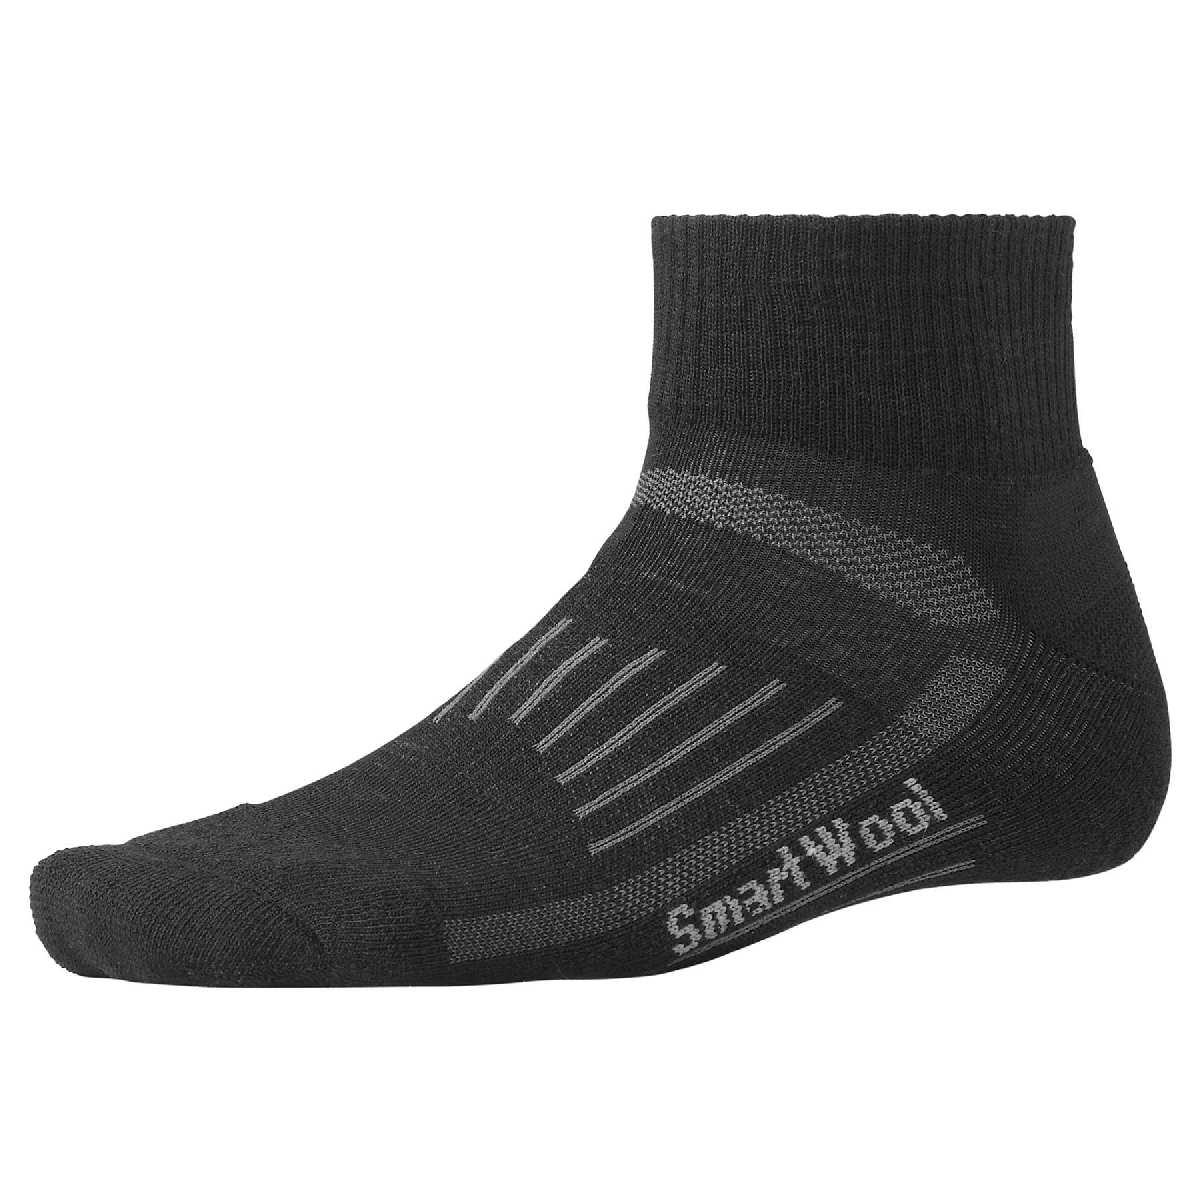 SmartWool Light Mini Walking Sock Size XL Black U.S.A. & Canada